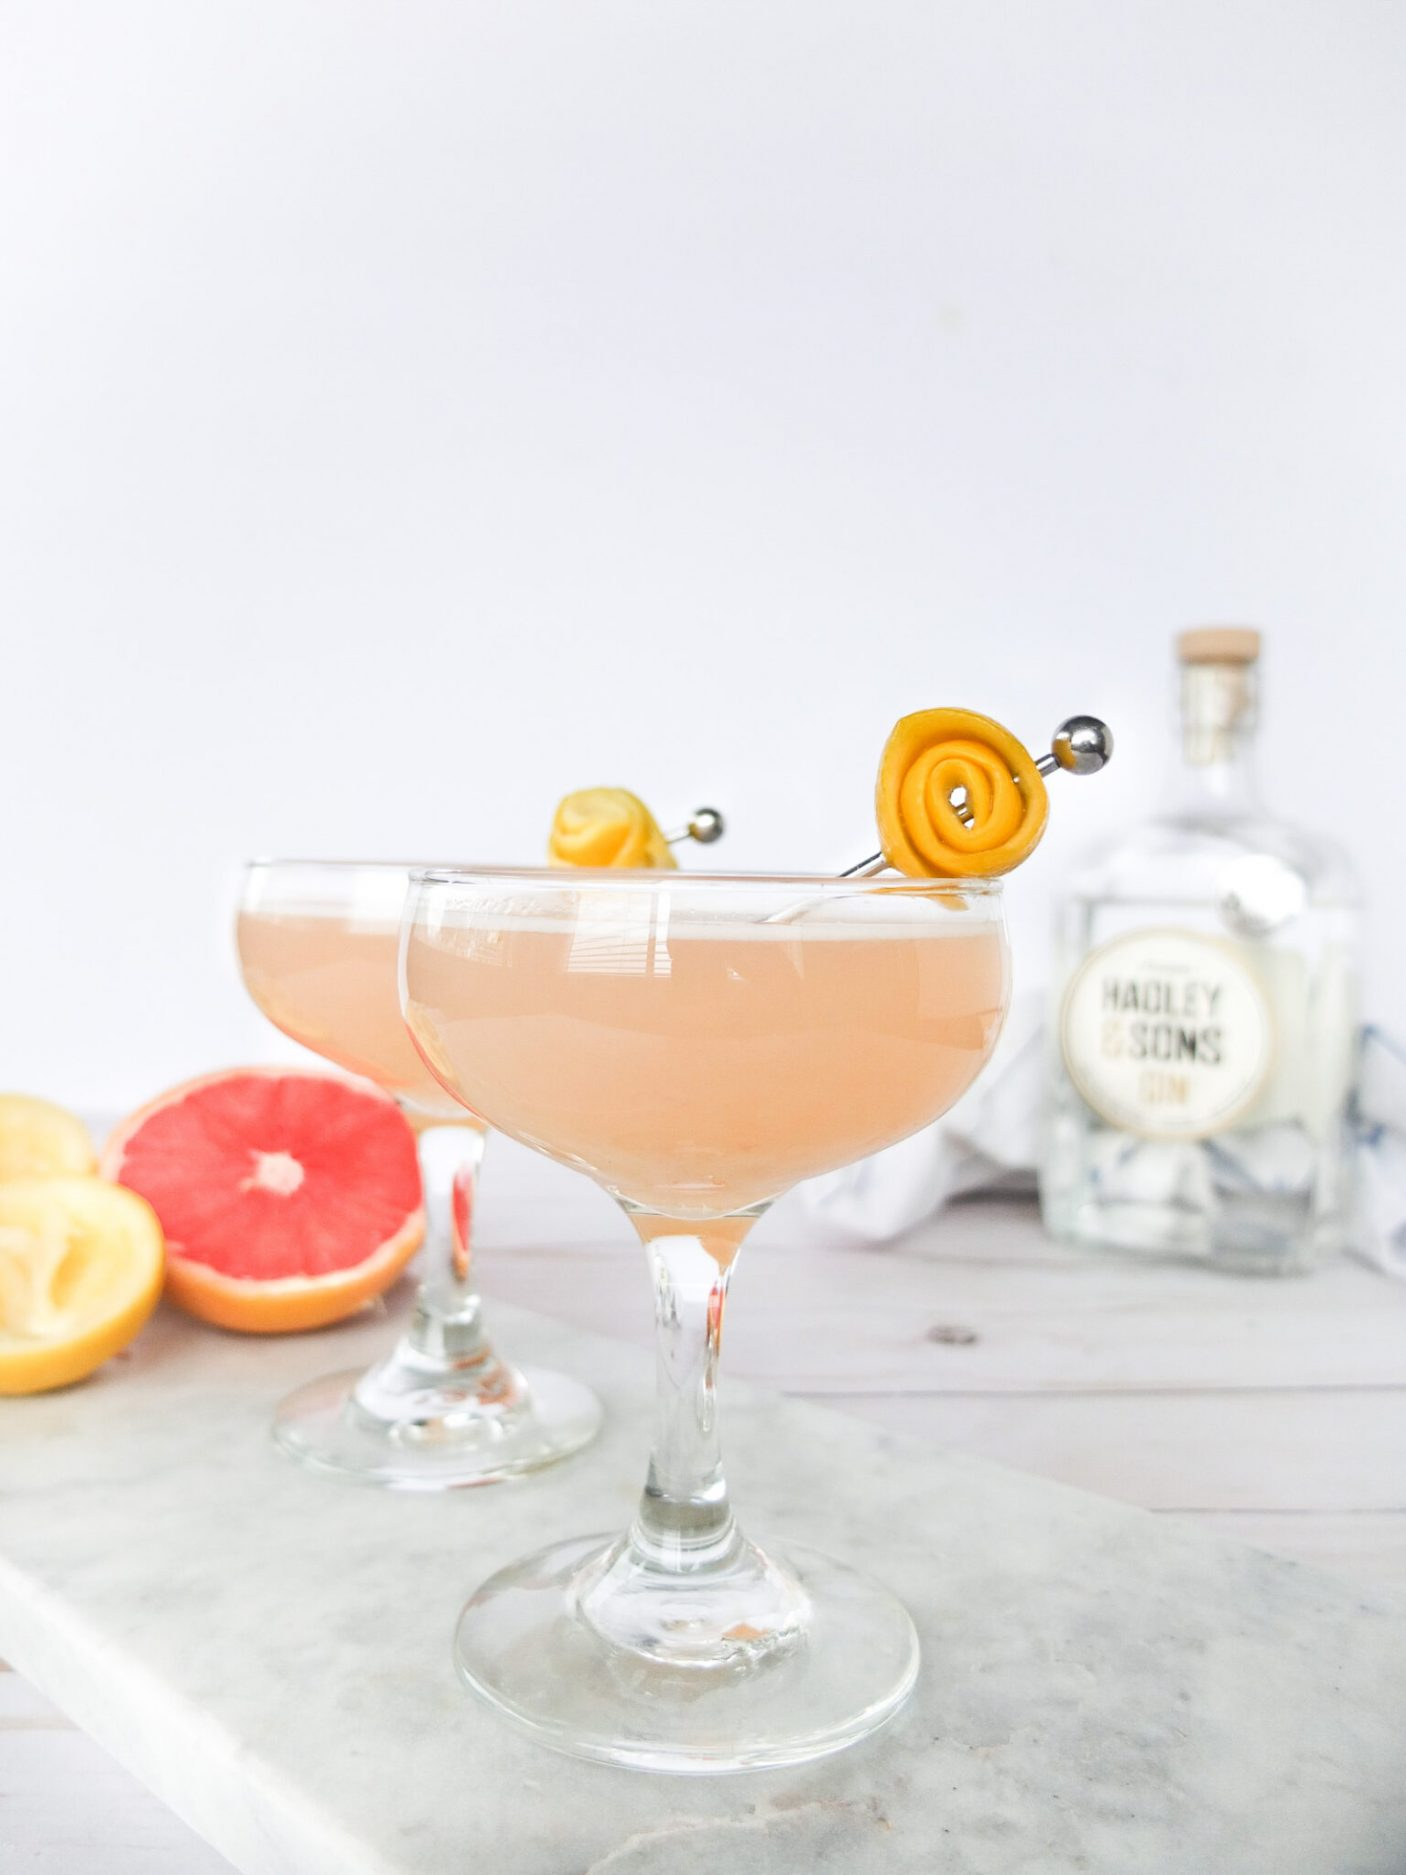 A bright and delicious winter cocktail using grapefruit and lemon to make a winter gin sour cocktail. This cocktail recipe uses winter citruses to make a sour gin cocktail. Perfect for winter sipping and works well in the summer for a light and refreshing drink. Served in a coupe glass.